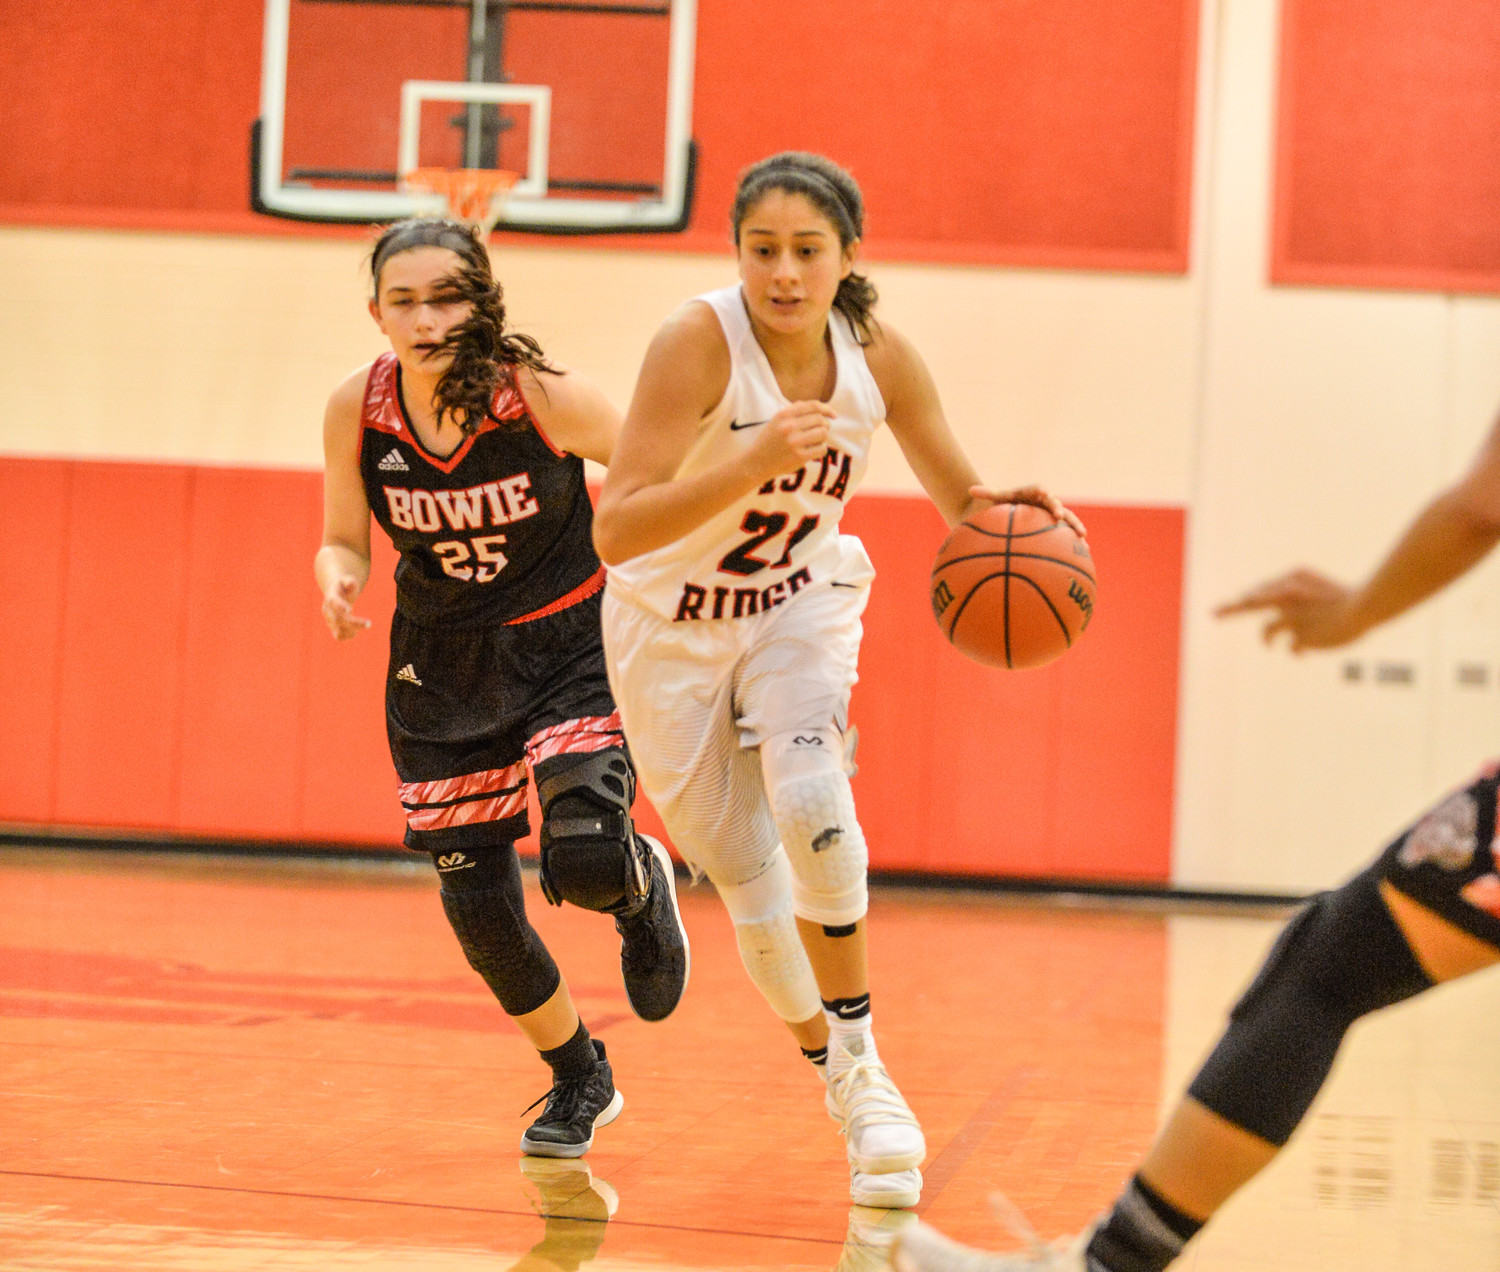 Vista Ridge sophomore Victoria Baker was the District 25-6A co-Newcomer of the year with teammate A.J. Marotte. The Lady Rangers made it to the first round of the playoffs.